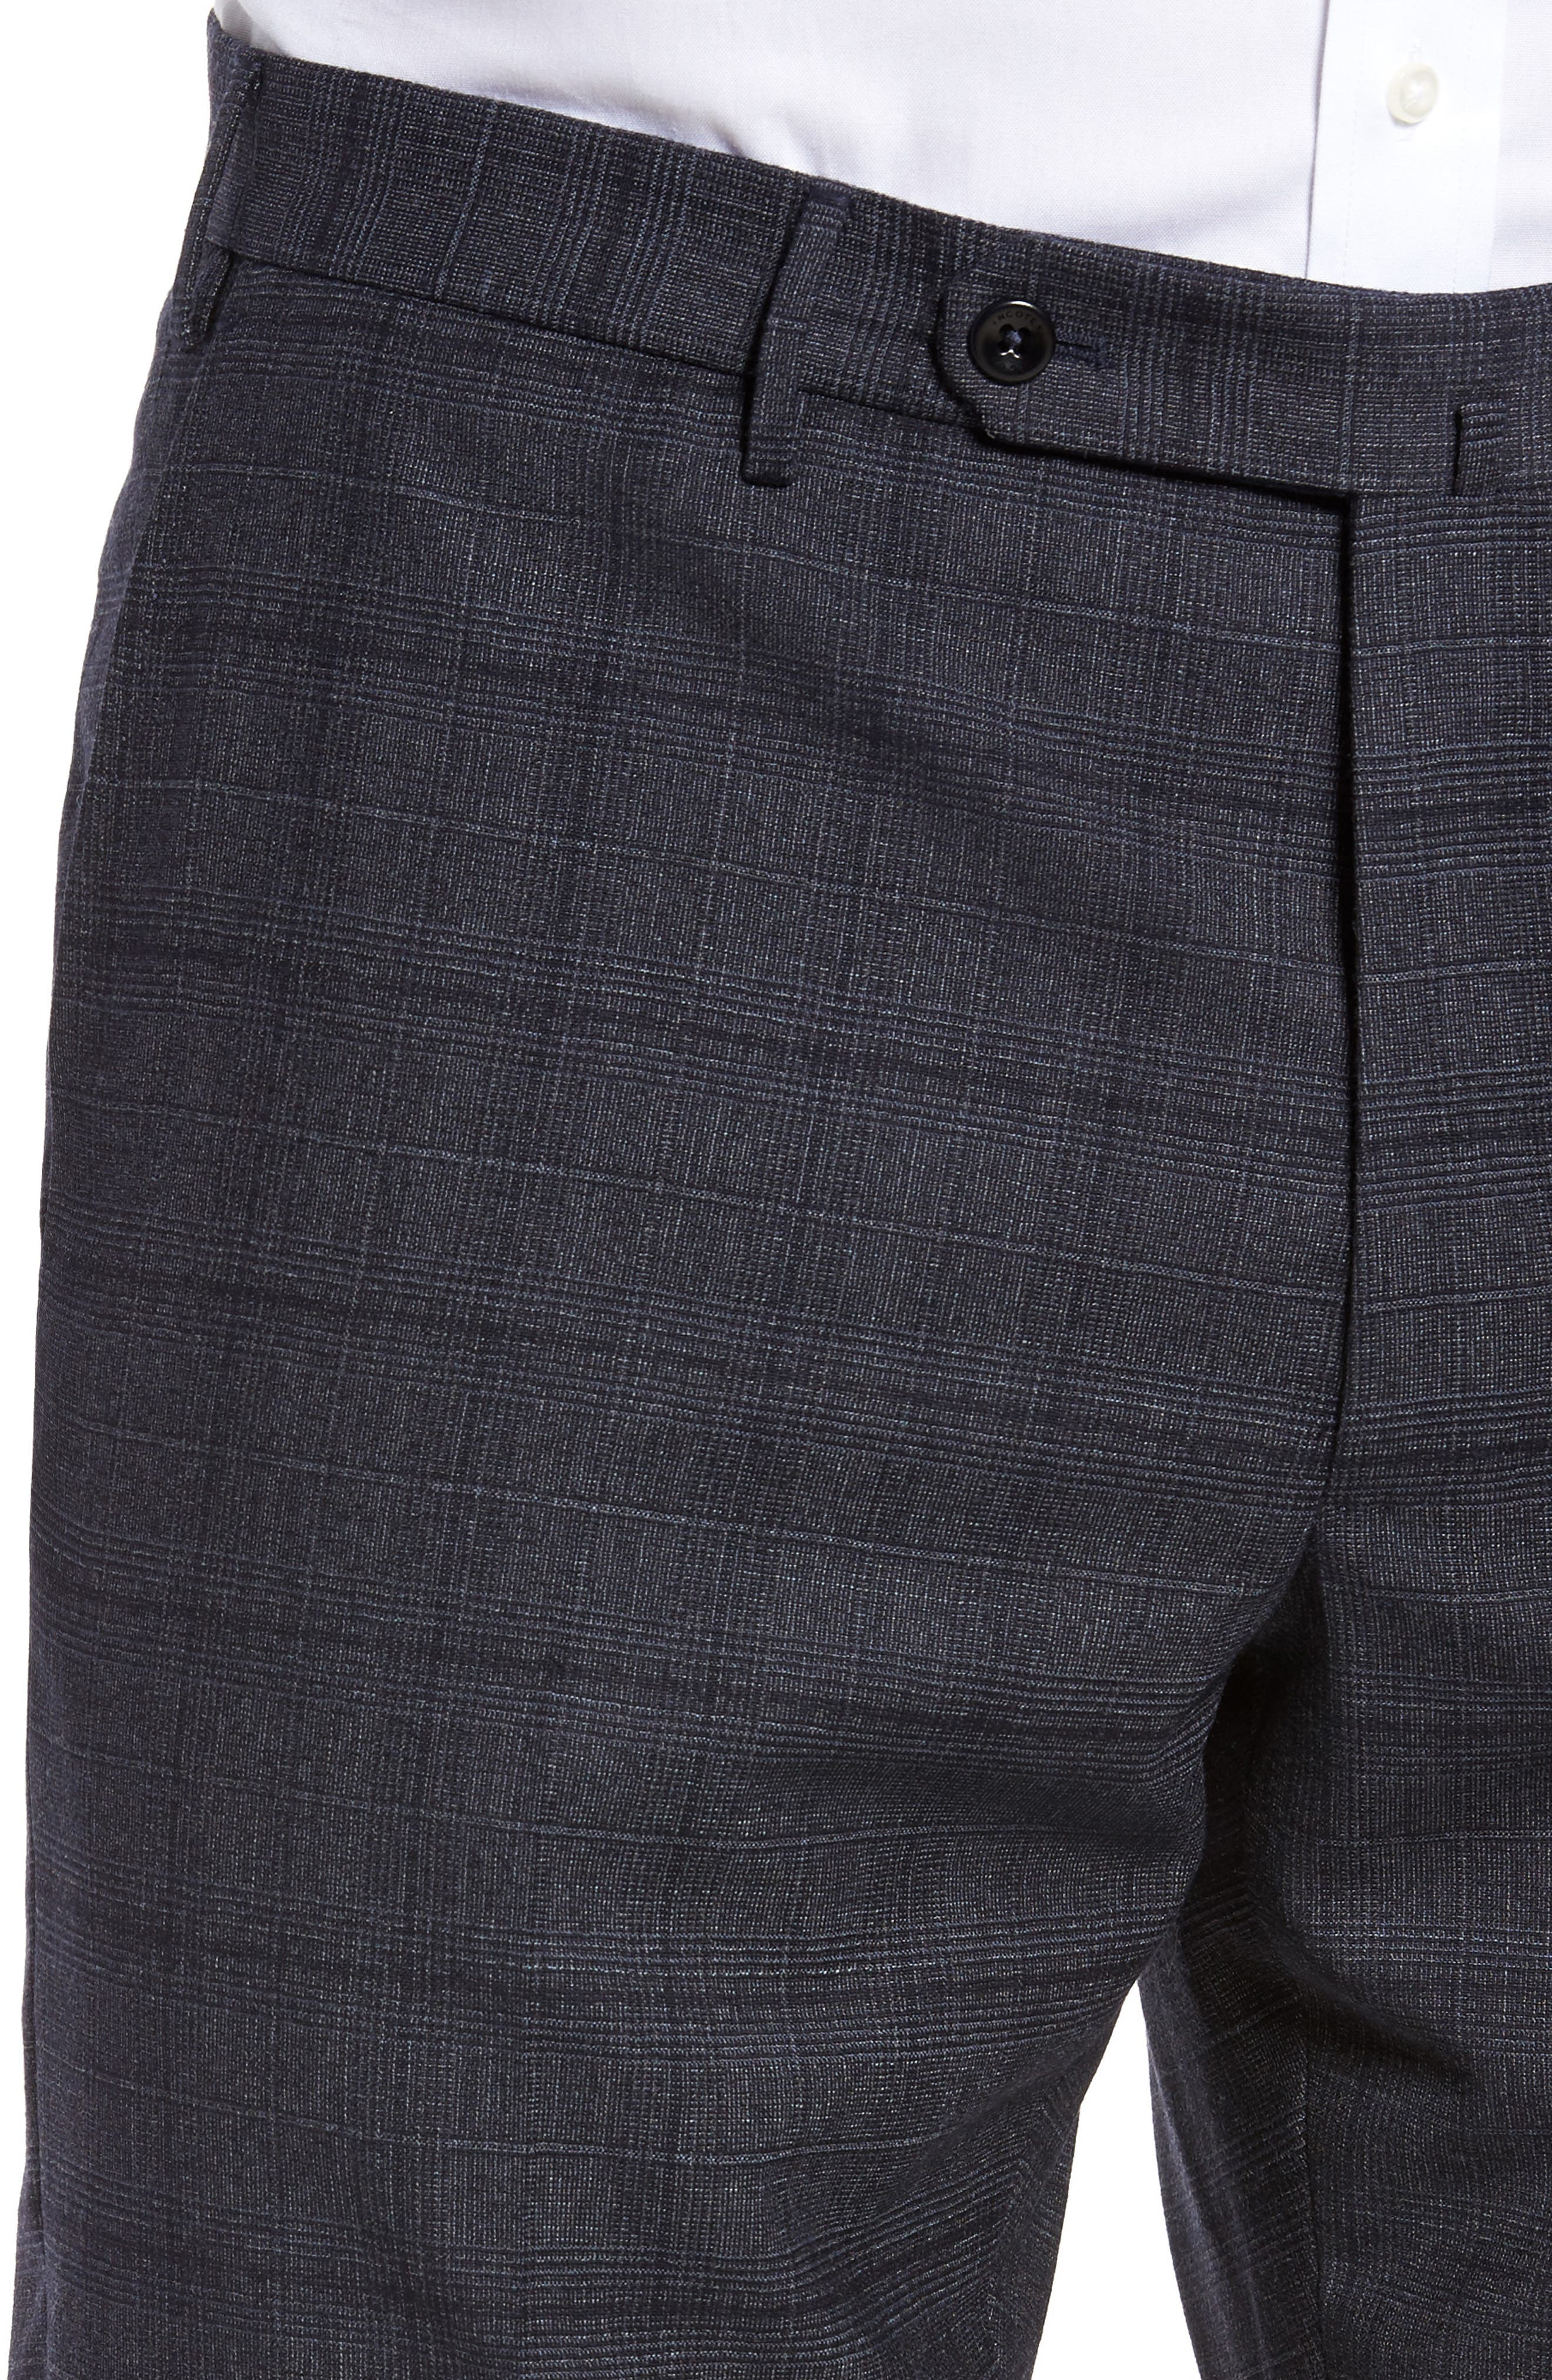 Alternate Image 5  - Incotex Benson Flat Front Trousers